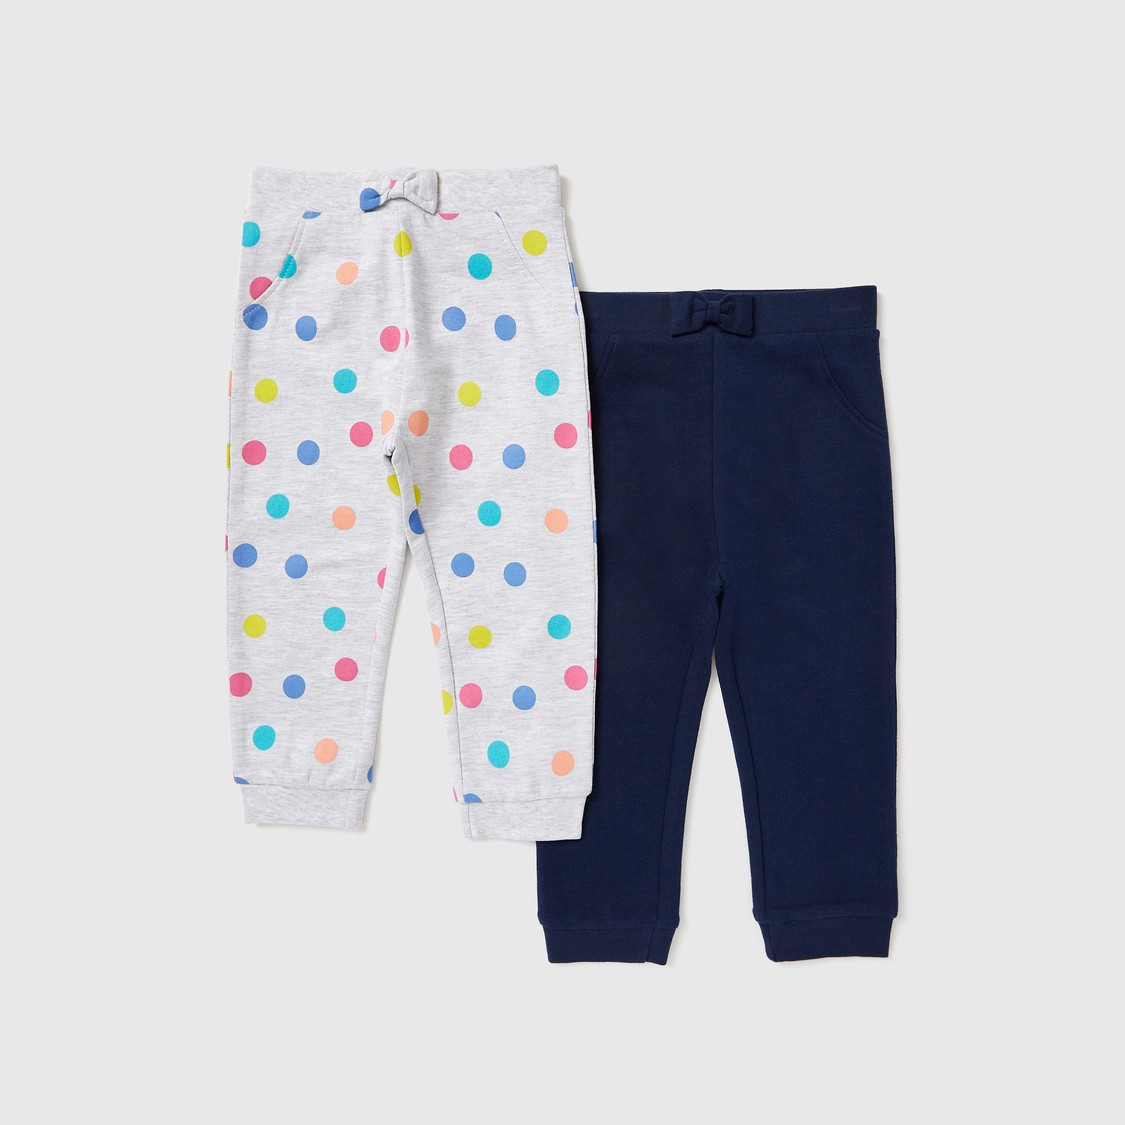 Set of 2 - Assorted Jog Pants with Pockets and Bow Applique Detail